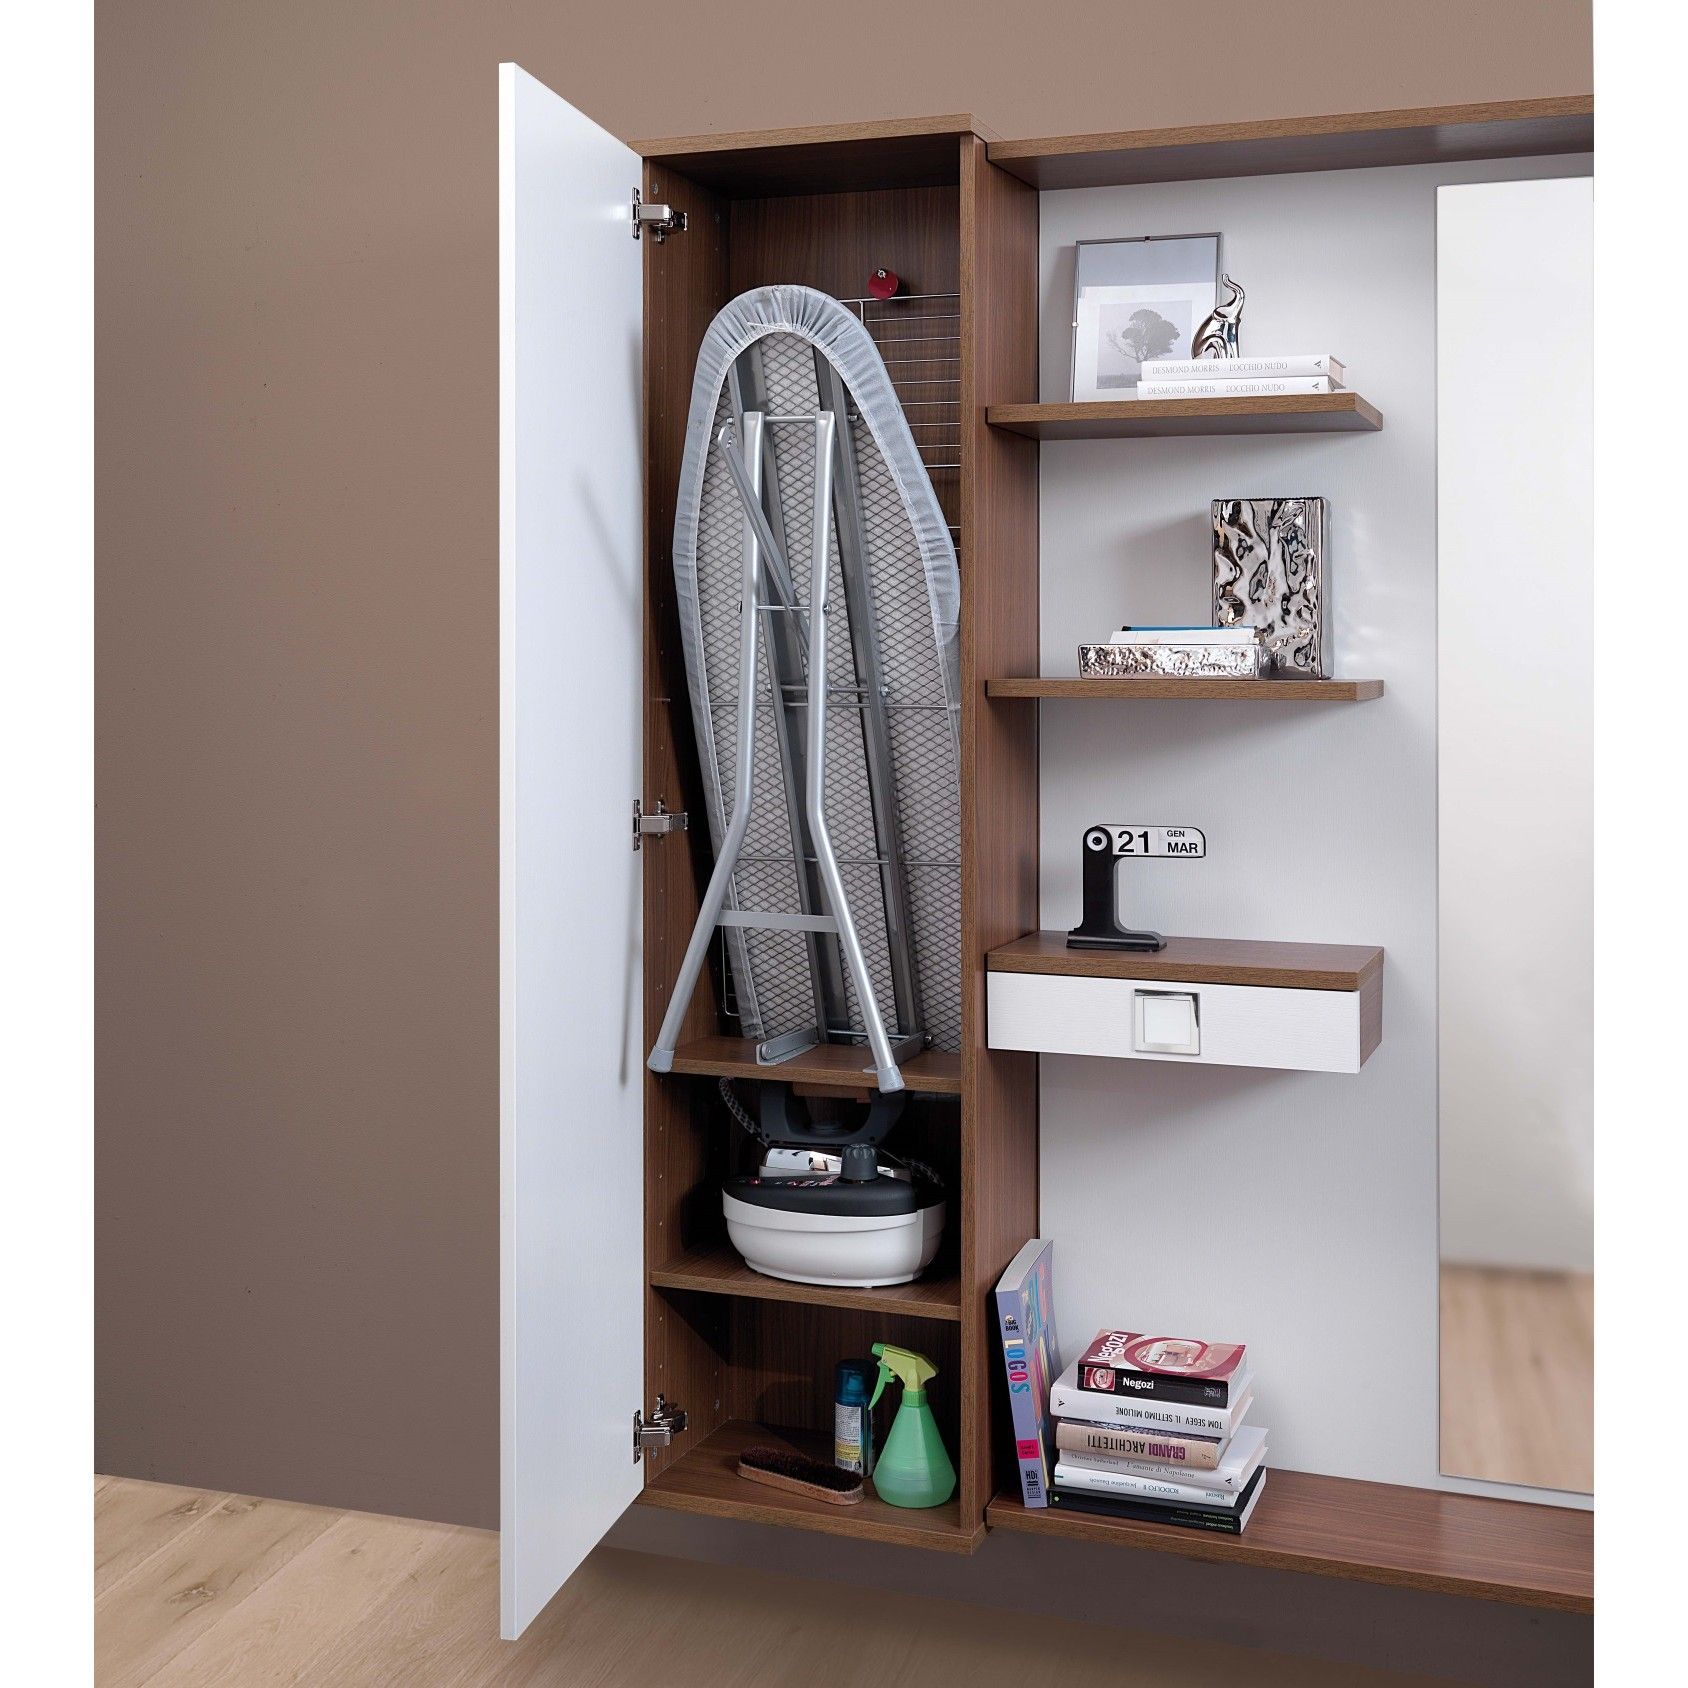 Mobile con asse da stiro a scomparsa cambridge arredaclick home complements ideas - Mobile asse da stiro ikea ...